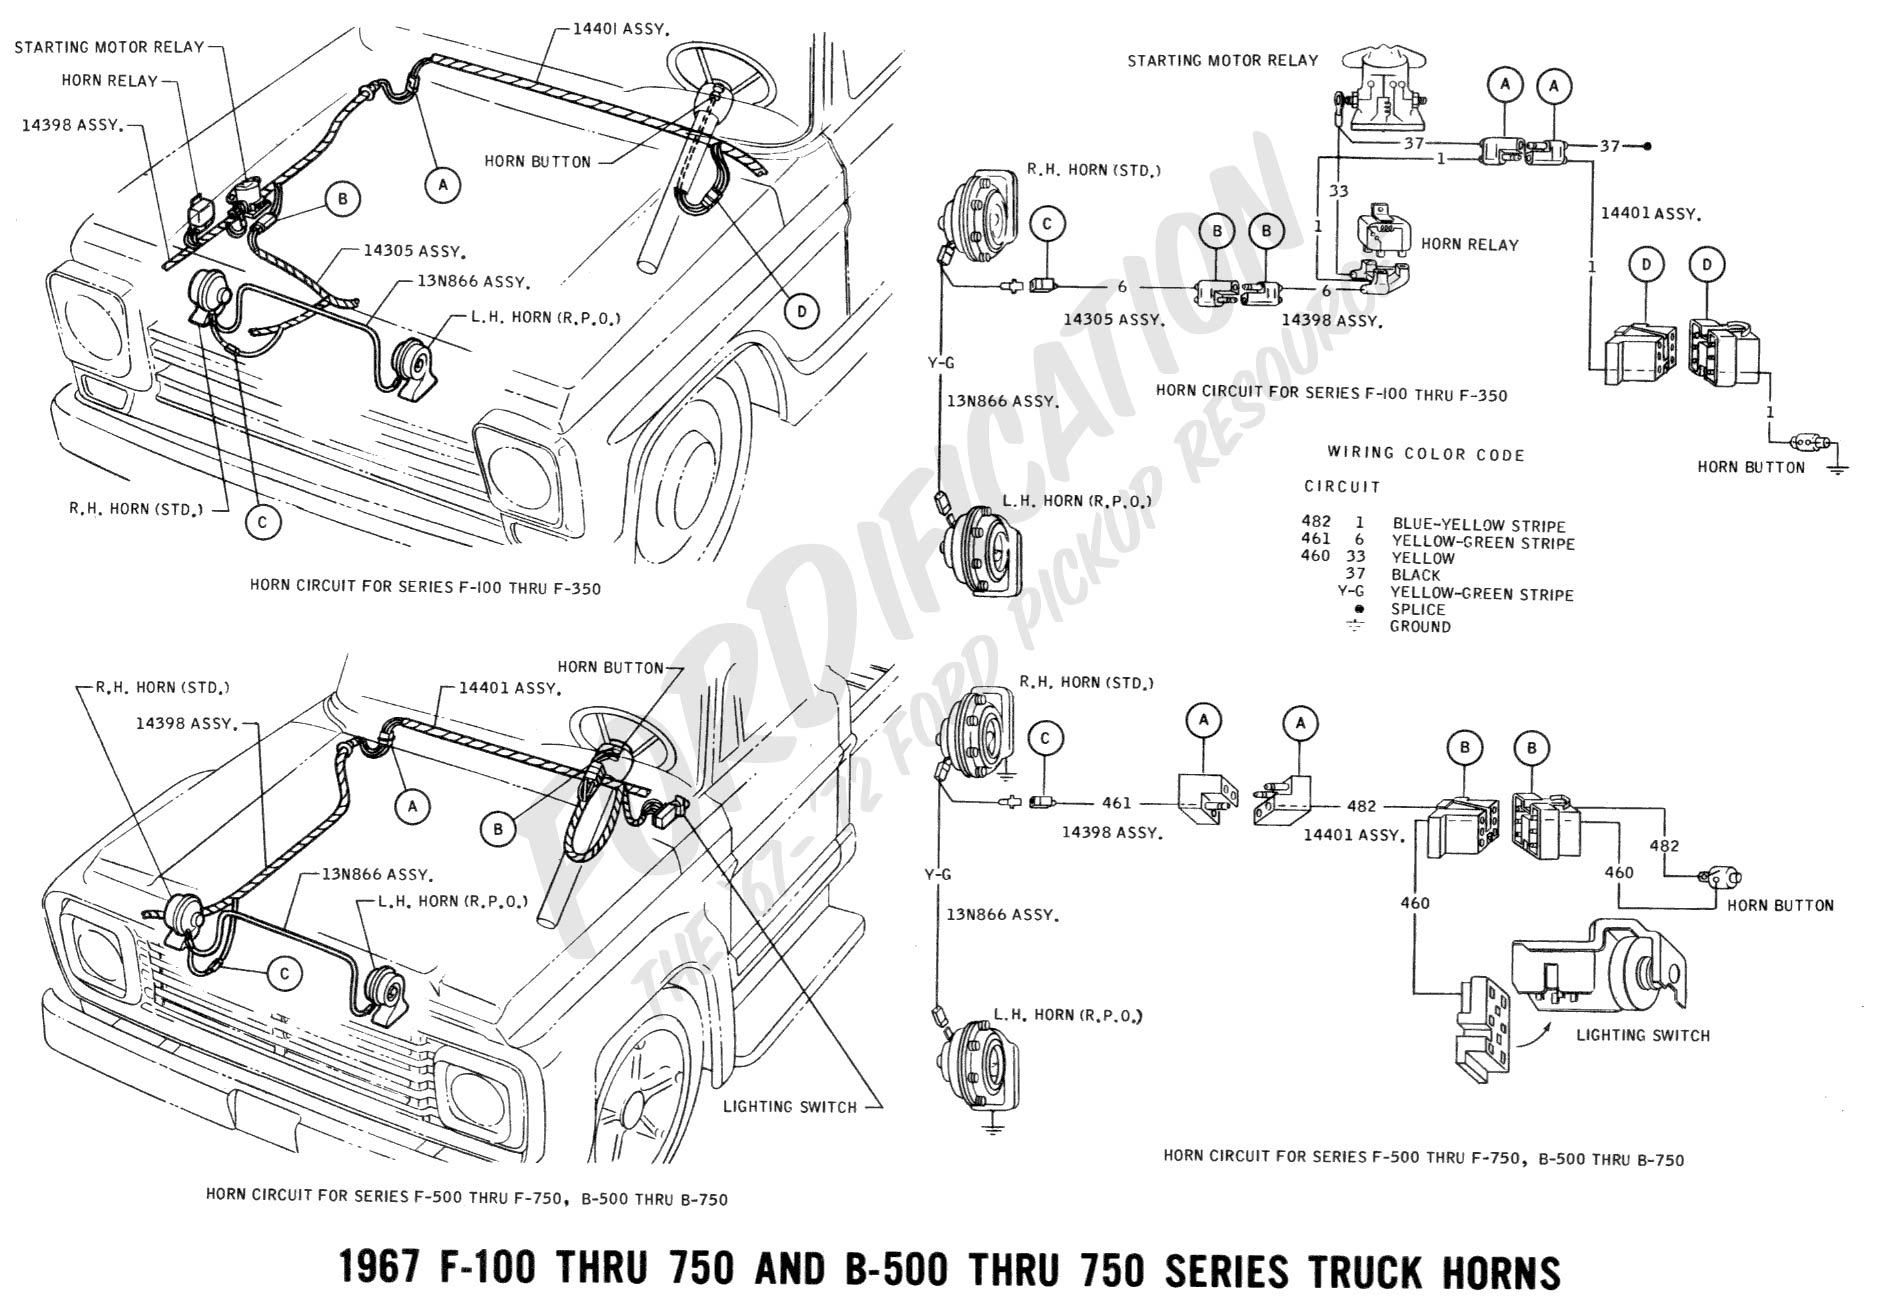 schematic wiring diagram for 1951 f1 pickup